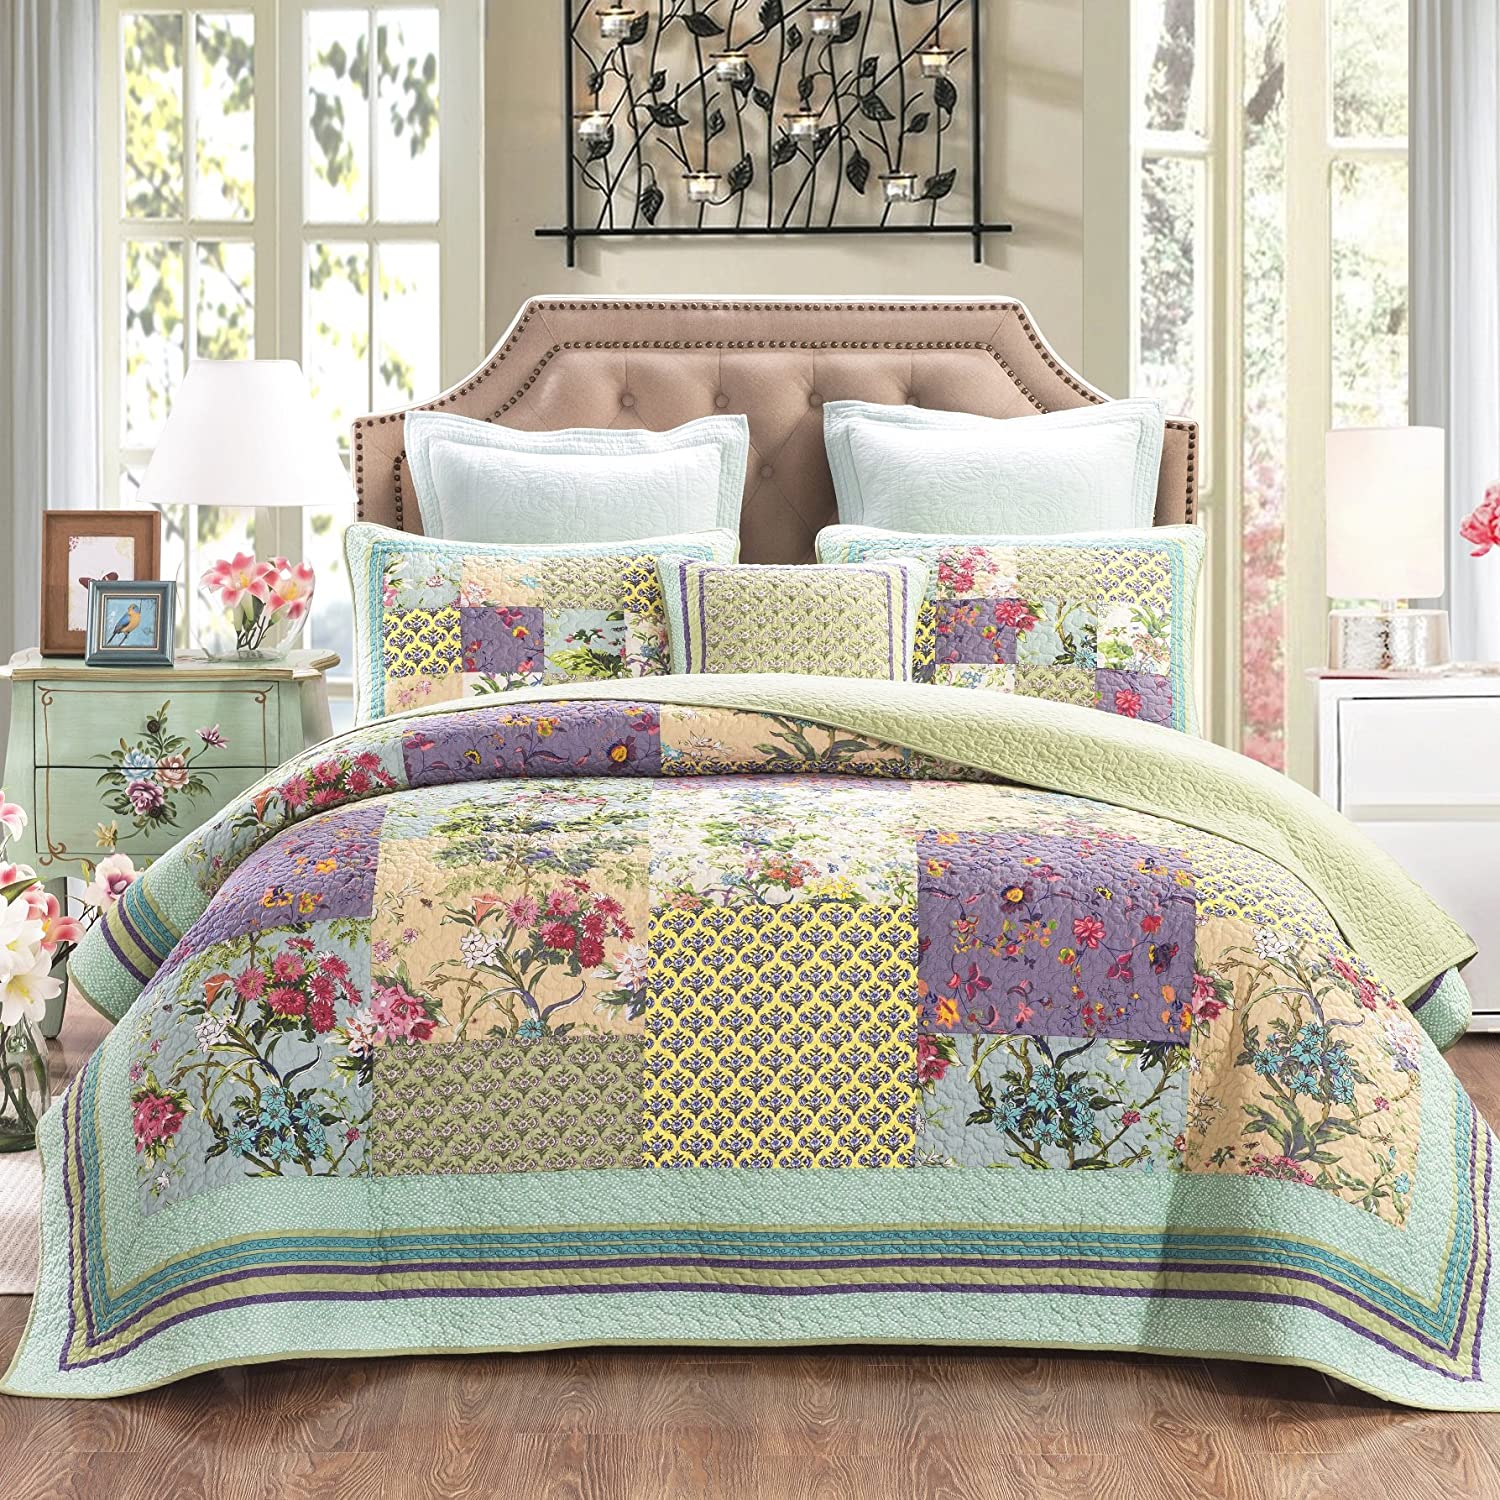 cover quilt green bedding linens leaf palm product duvet set range